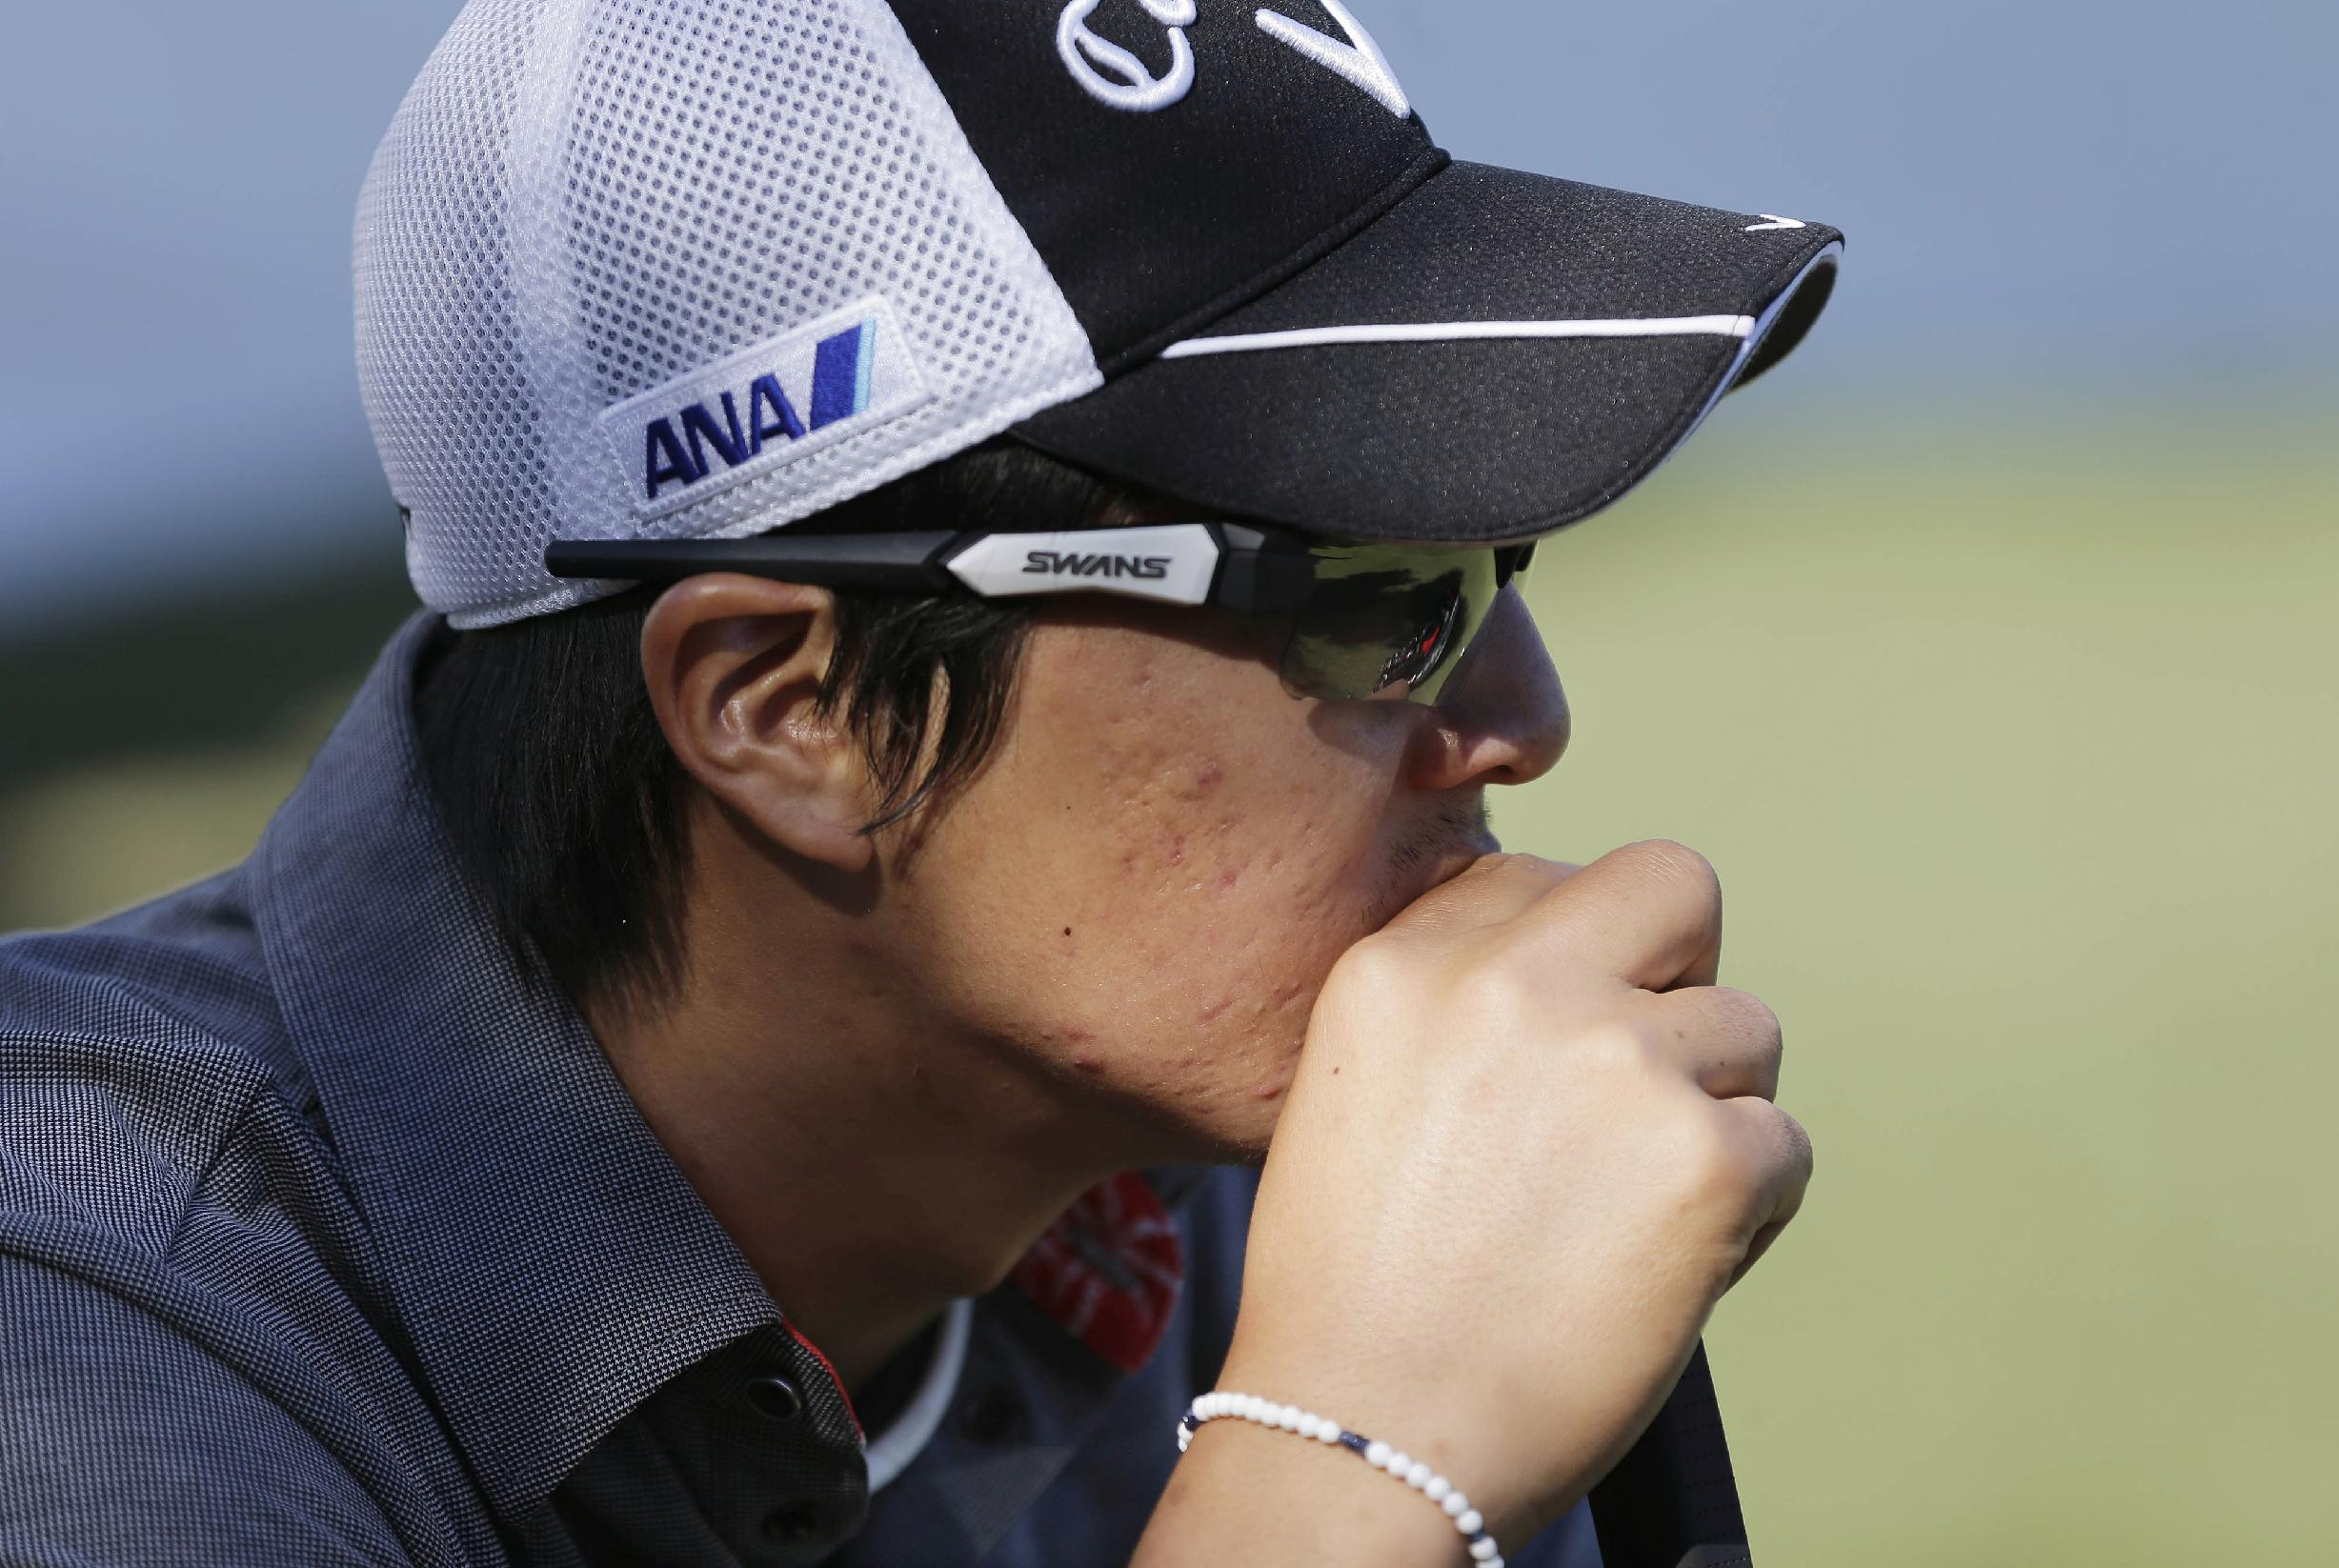 Japan's Ryo Ishikawa waits to putt on the 15th green in the first round of the Shriners Hospitals for Children Open golf tournament, Thursday, Oct. 17, 2013, in Las Vegas